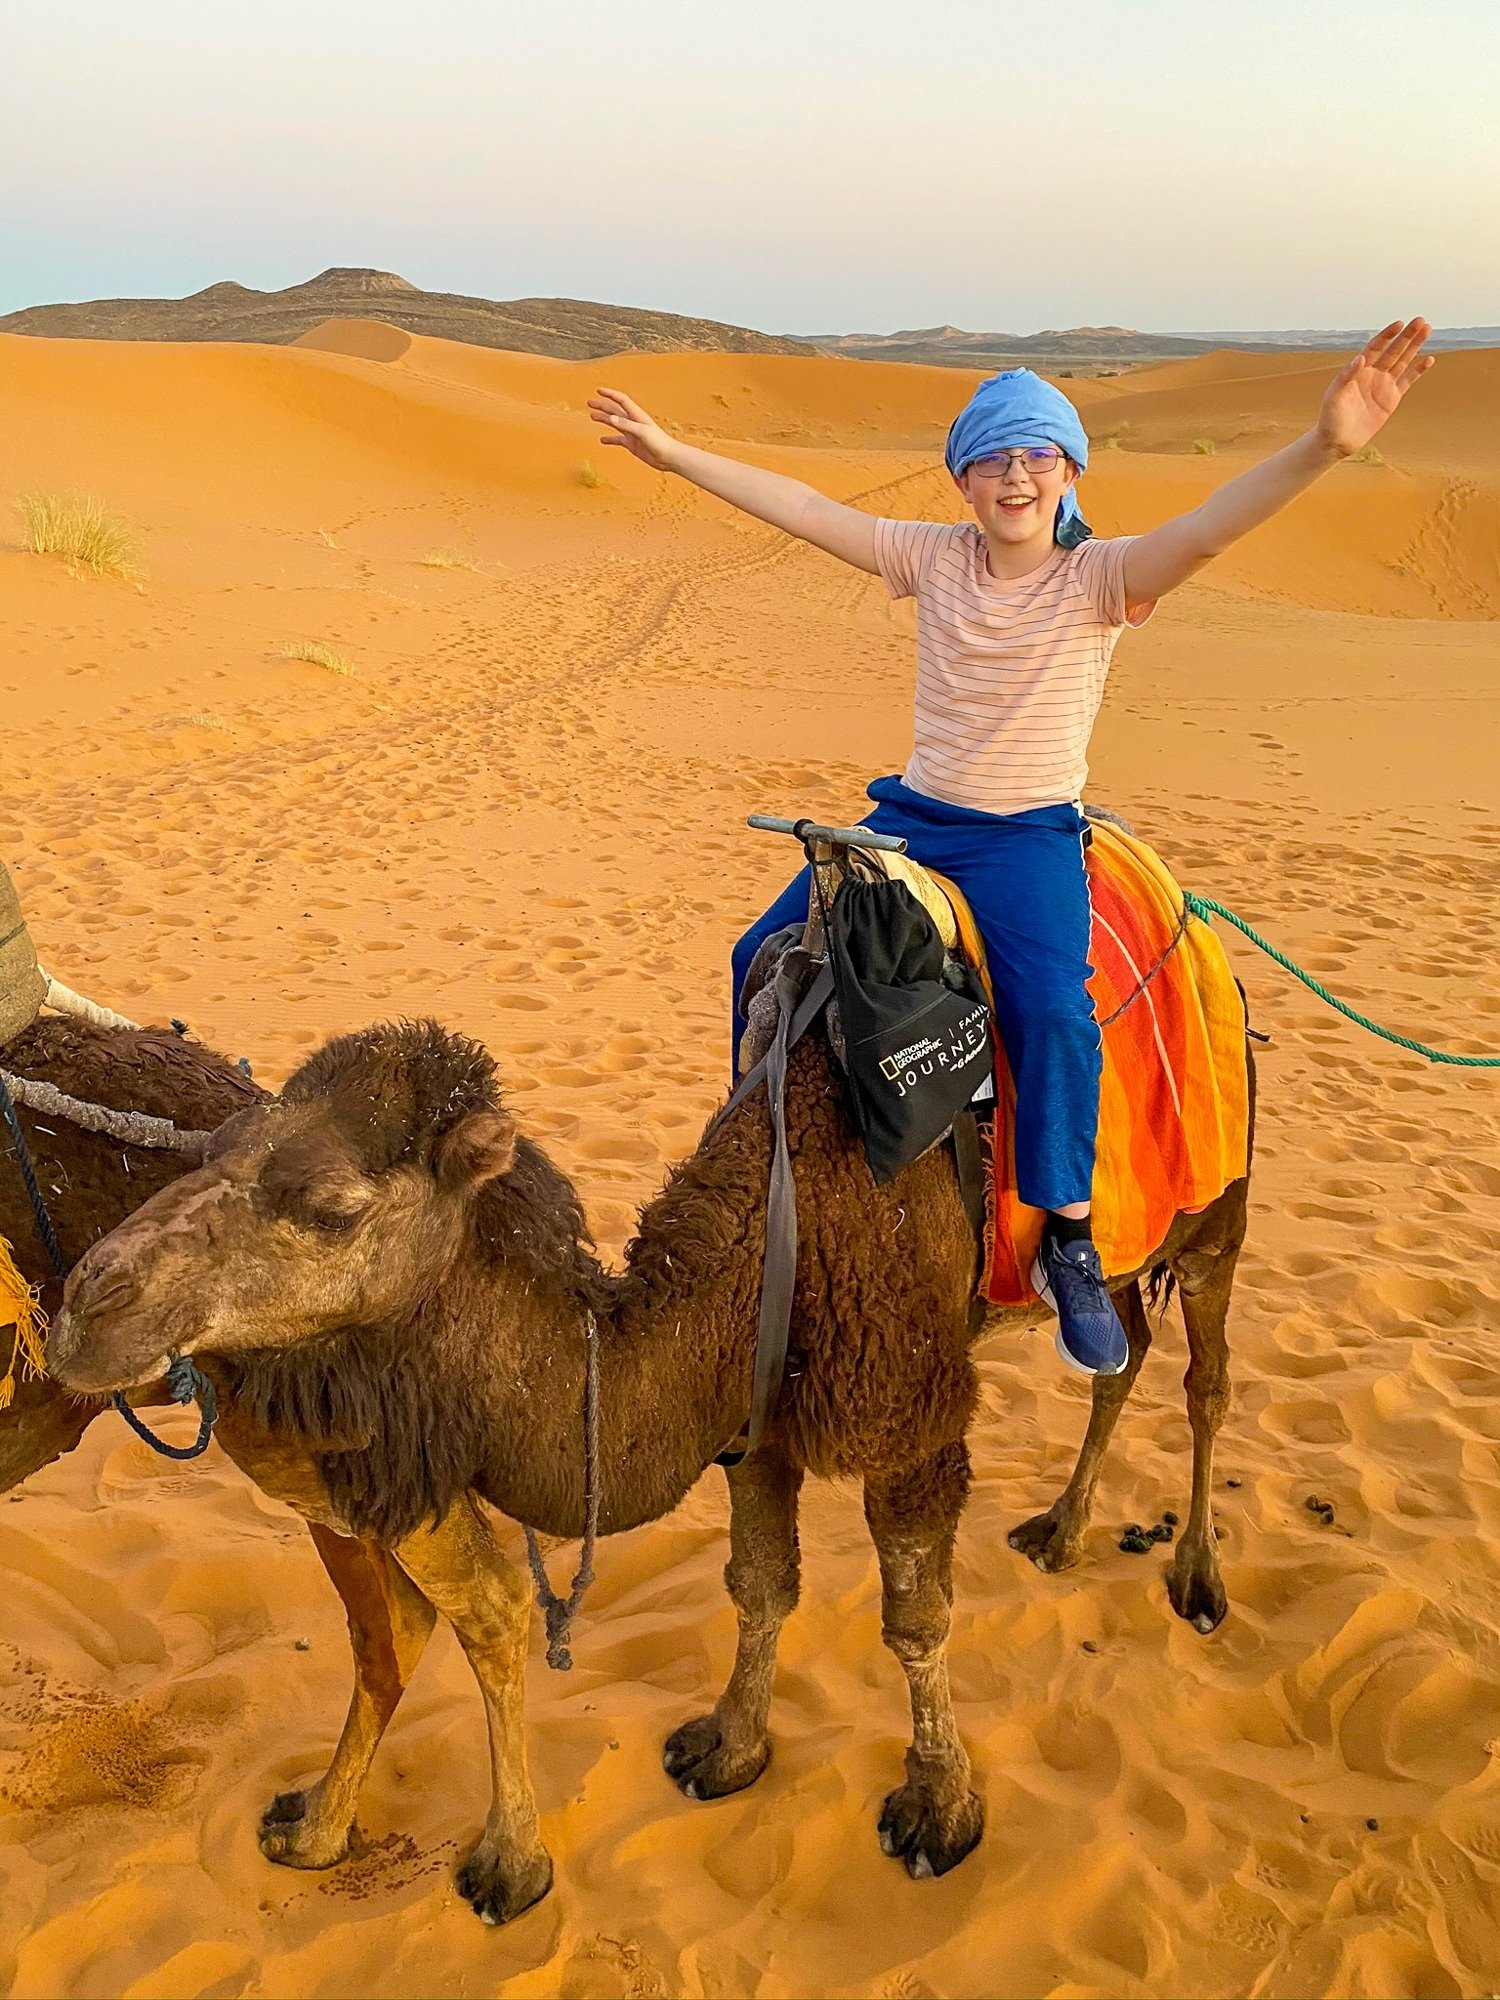 Tween boy on a camel in the Sahara Desert in Morocco